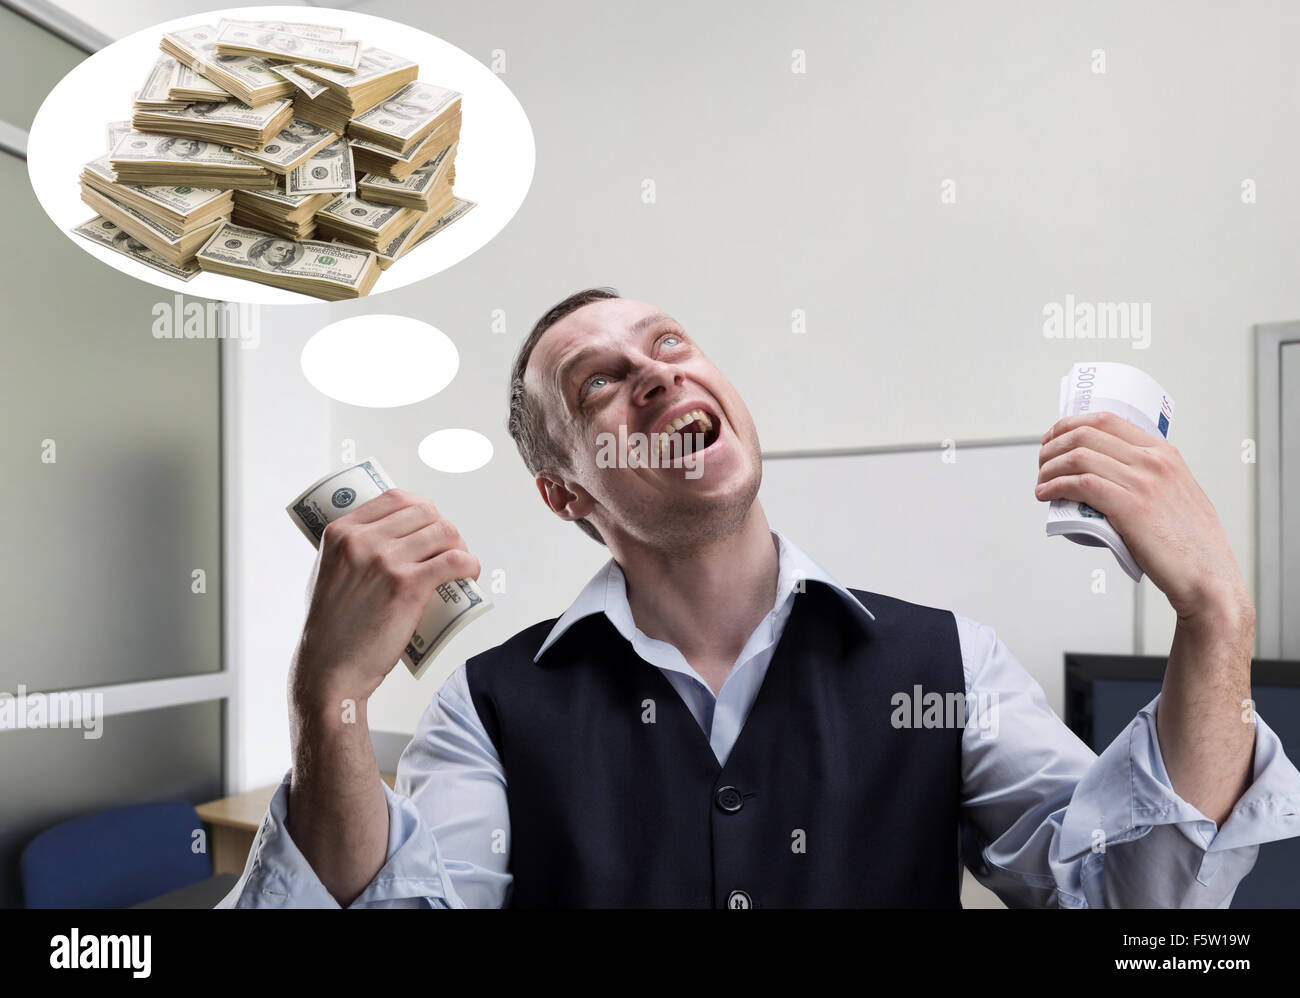 Cheerful businessman holds money and dreams in the office - Stock Image